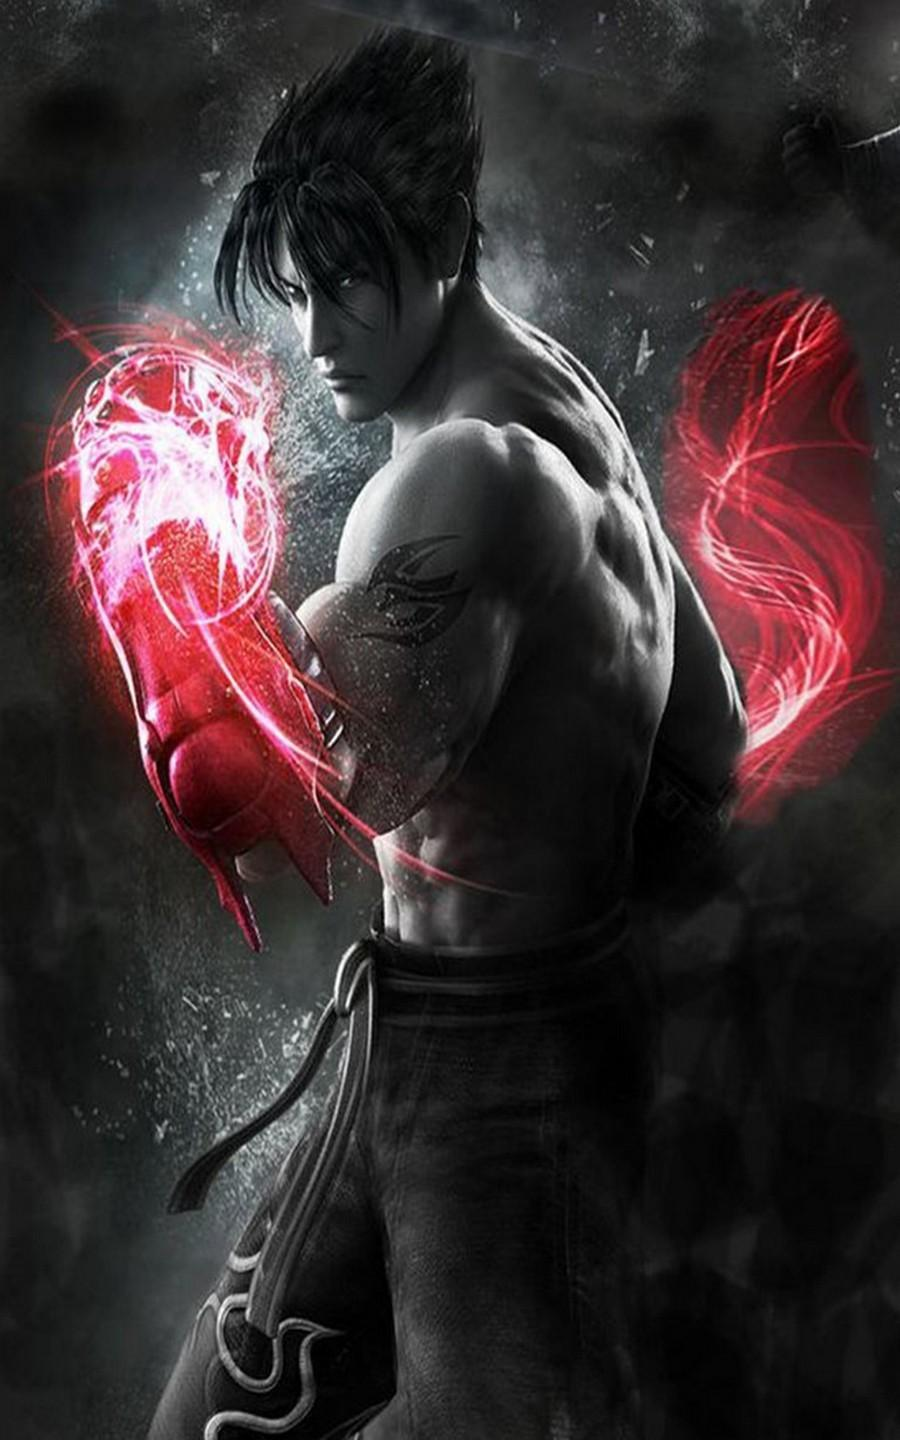 Devil Jin Wallpaper Hd For Android Apk Download